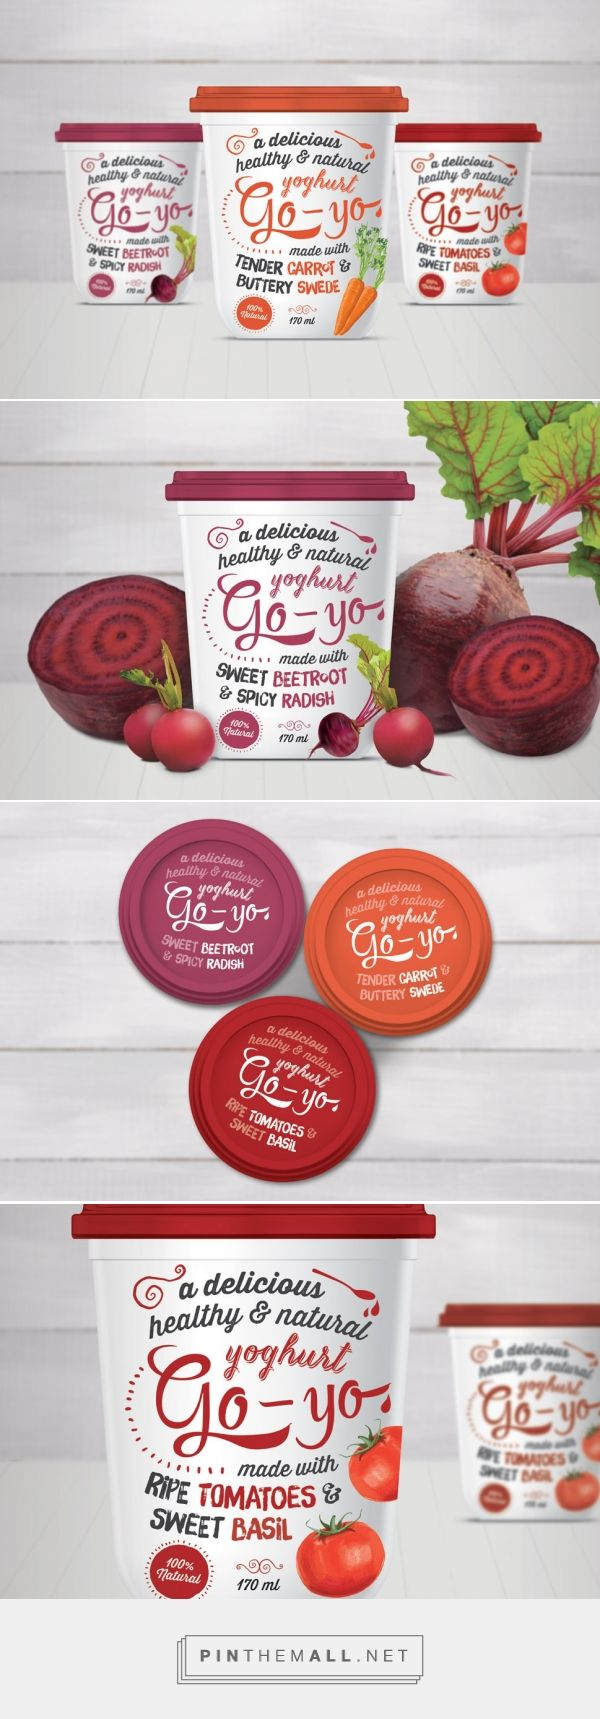 Go Yo Yoghurt By Lara Caiulo Source Behance Pin Curated By Sfields99 Packaging Design Inspiratio Yogurt Packaging Dairy Packaging Healthy Food Packaging